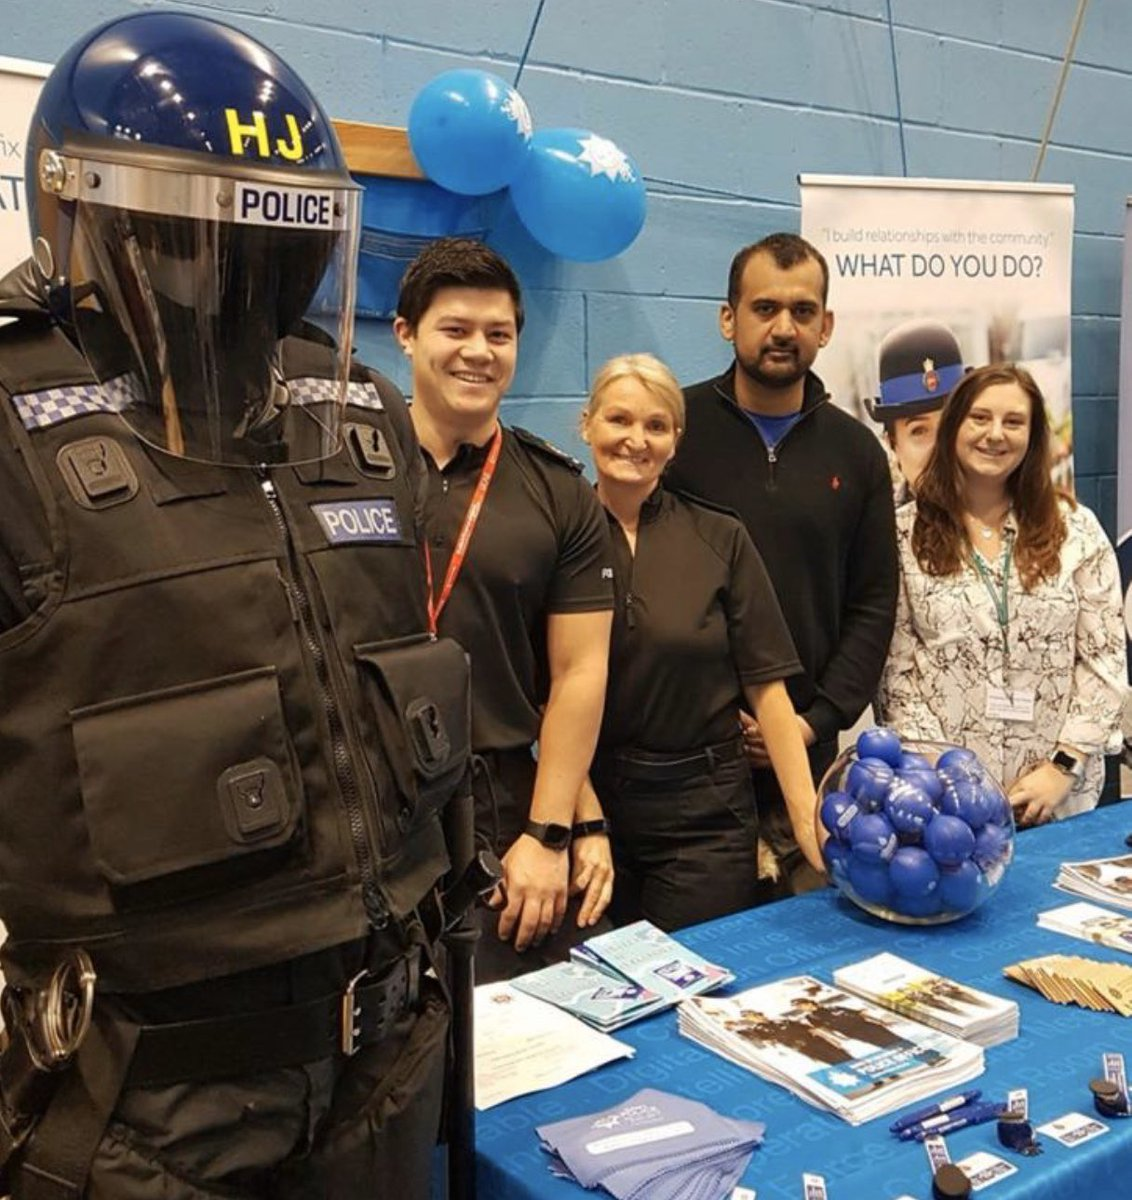 Back at @ucas_online come find out about our free degree or graduate diploma in Professional Policing! #police #policing #freedegree #Apprenticeship @UniOfSurrey @SurreyPolice